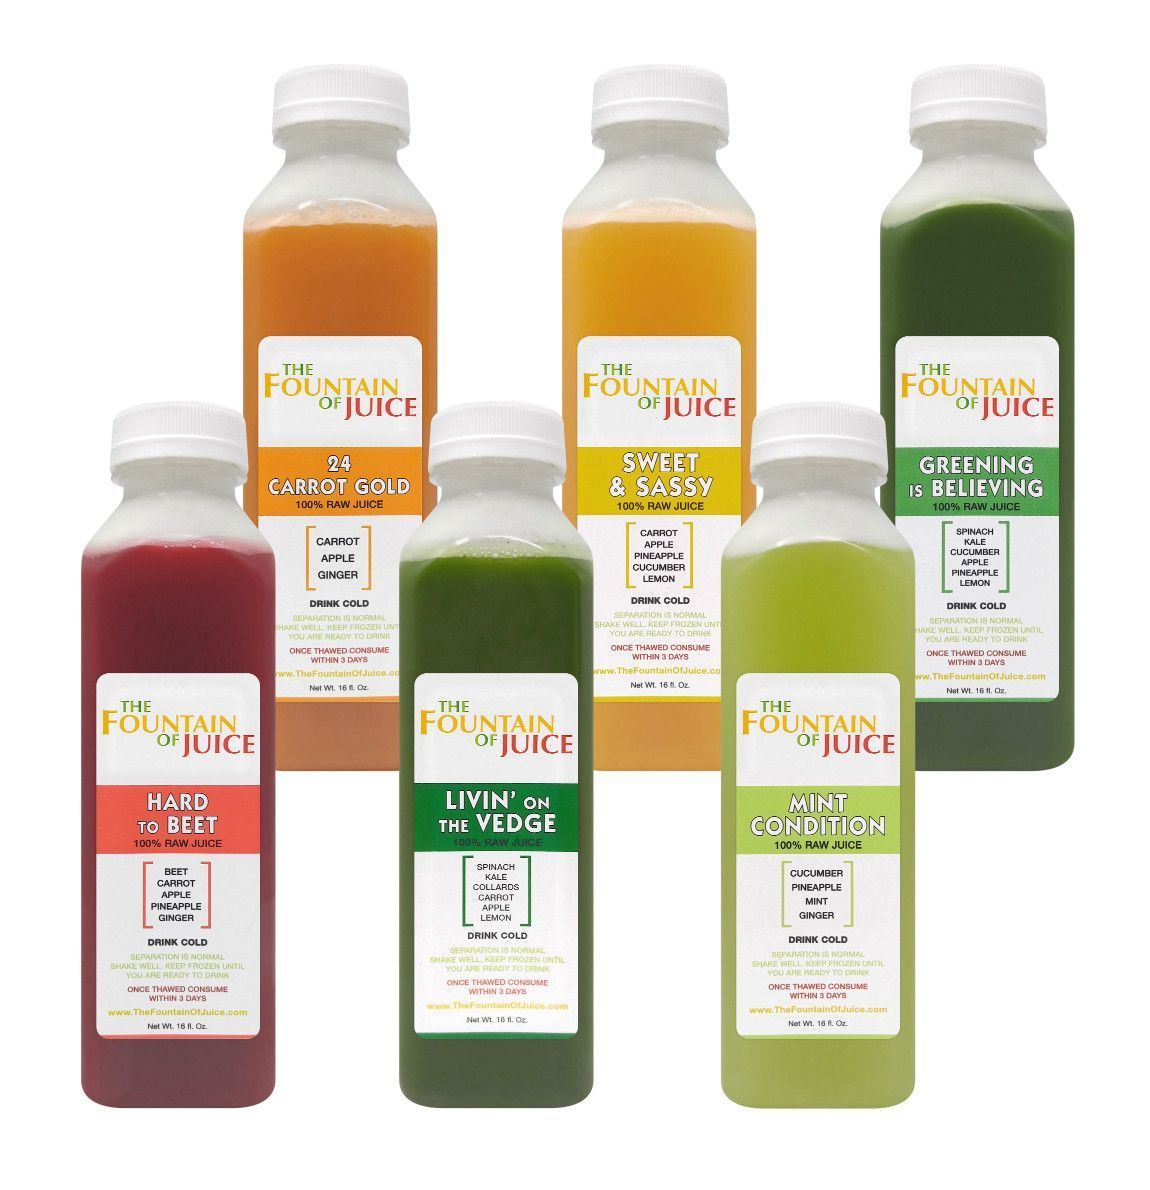 Making your own meals smoothies and juices is fantastic